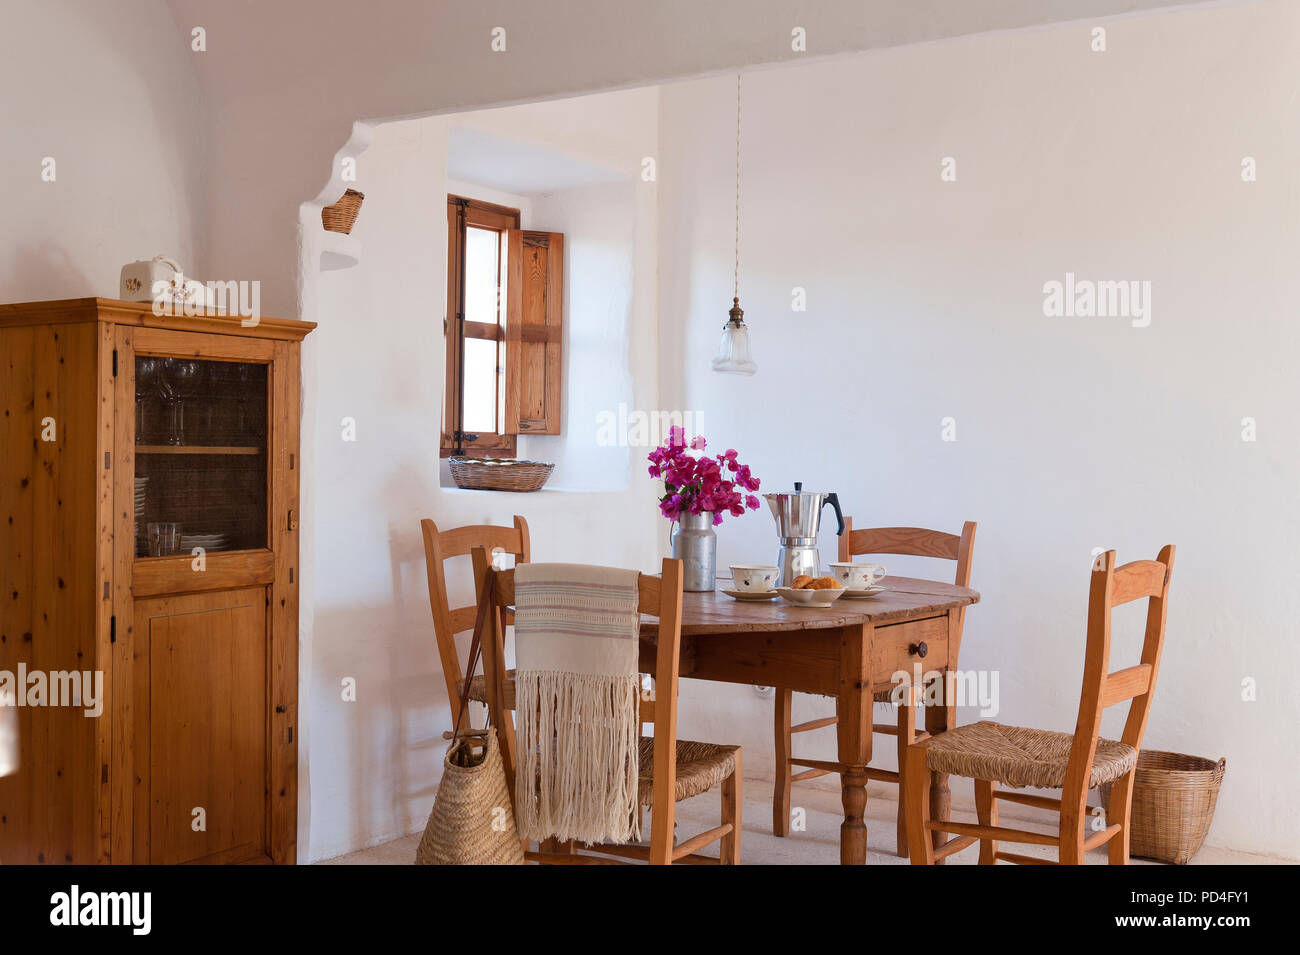 Rustic dining room - Stock Image